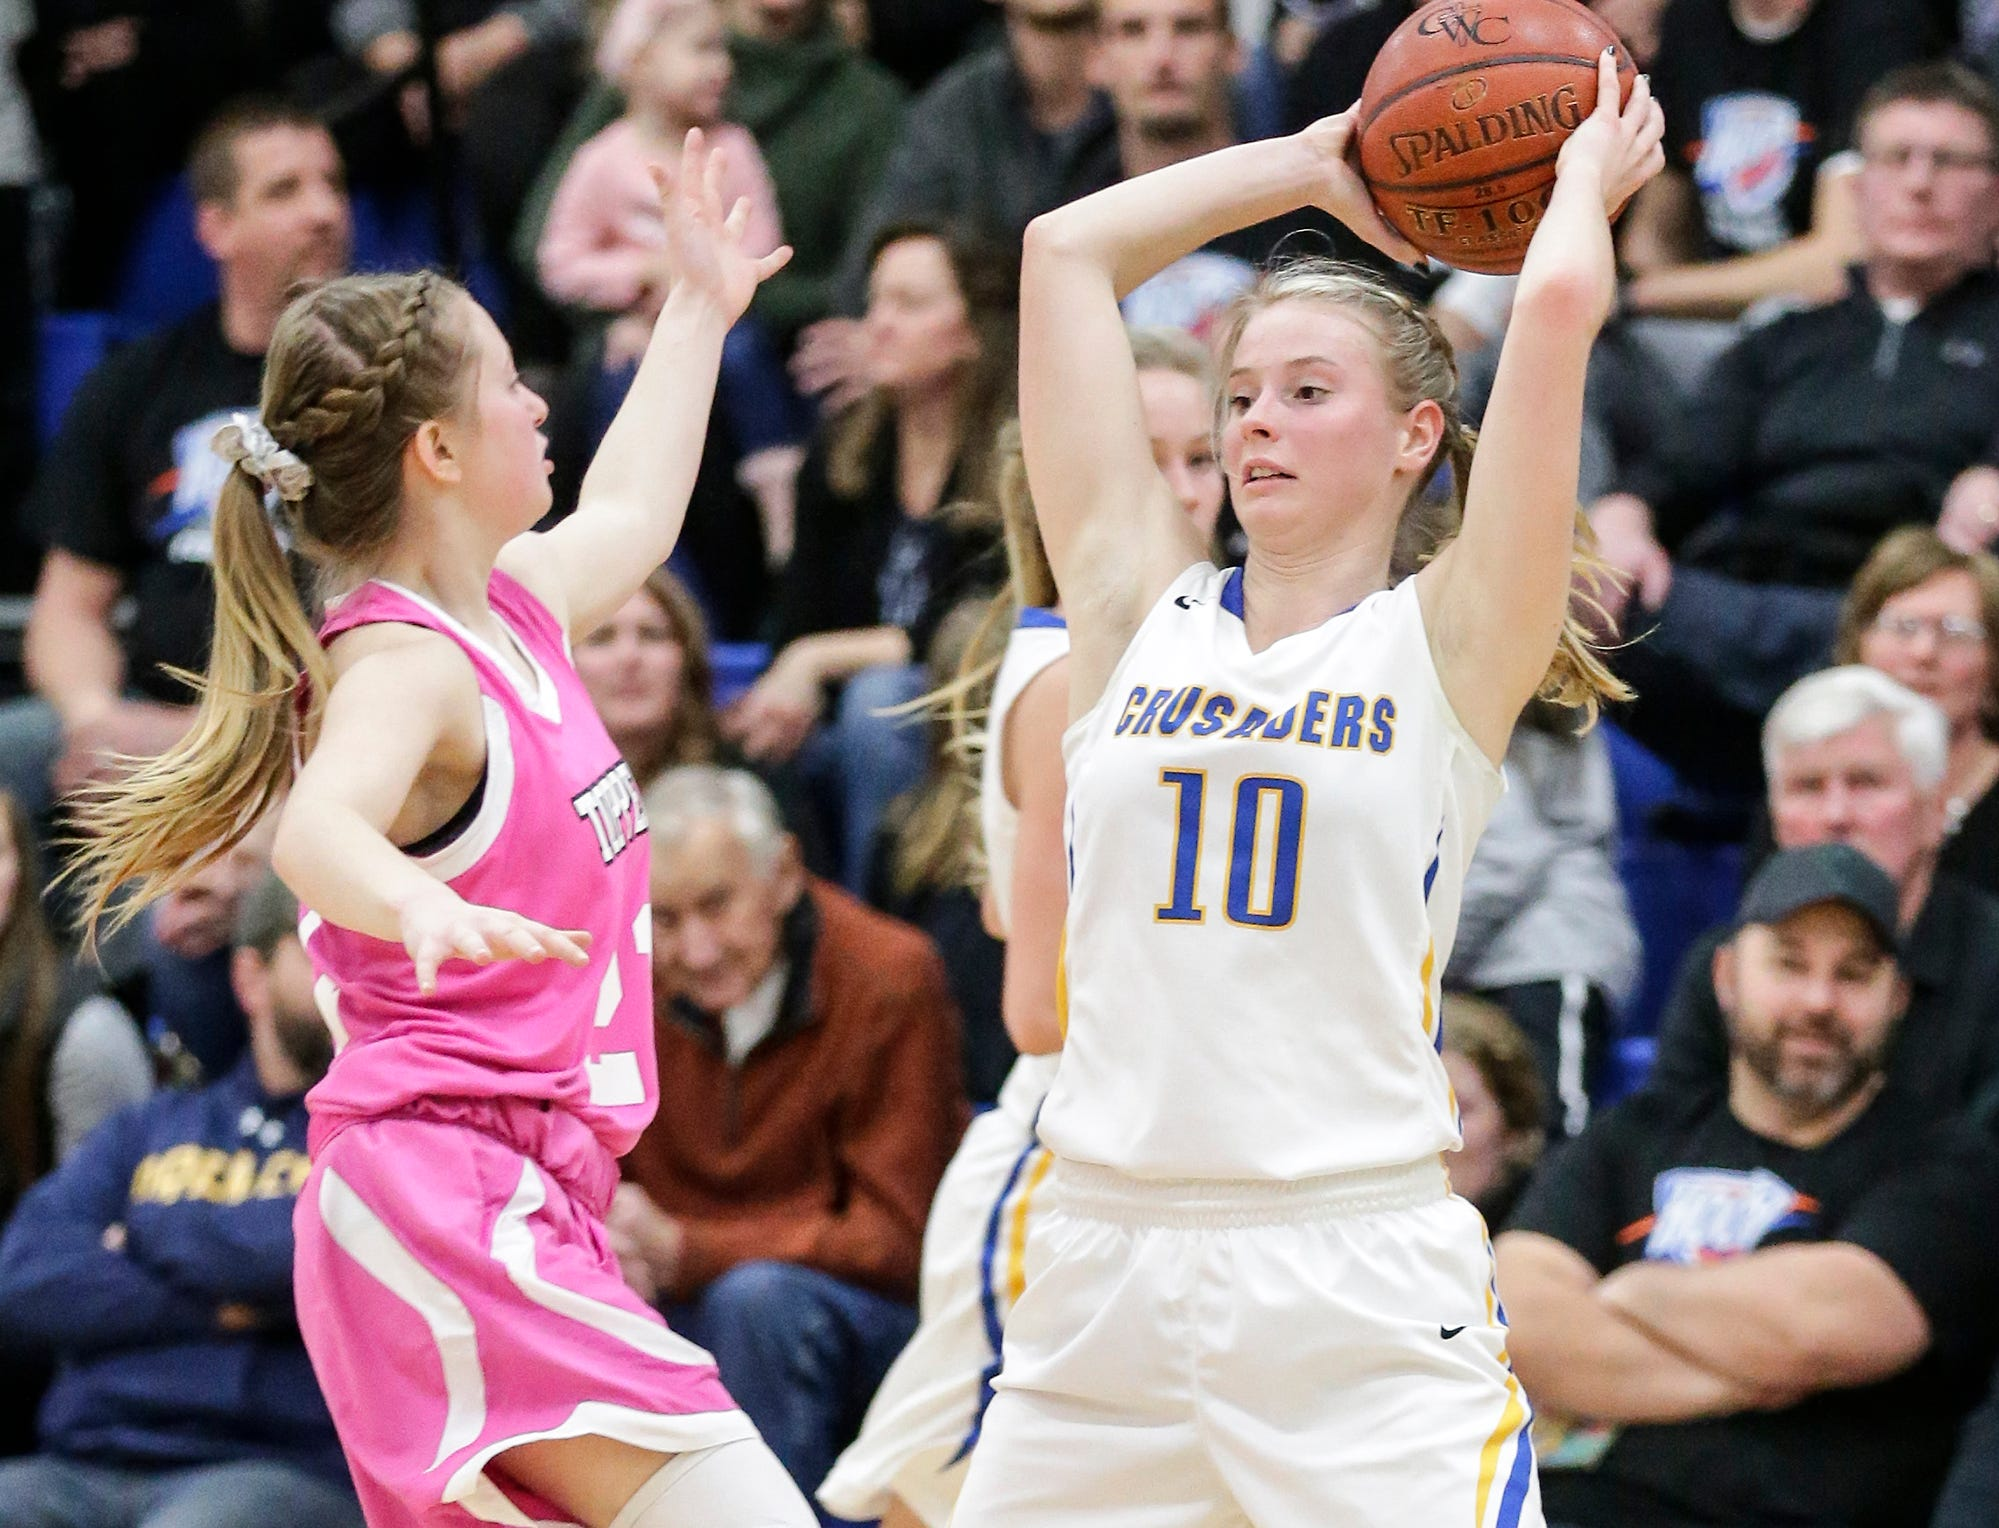 Central Wisconsin Christian High School girls basketball's Claire Jansen looks to pass the ball against Cambria-Friesland's Haley Olson-Deisnger during their game Thursday, January 3, 2019 in Waupun. Cambria-Friesland won the game 58-44. Doug Raflik/USA TODAY NETWORK-Wisconsin